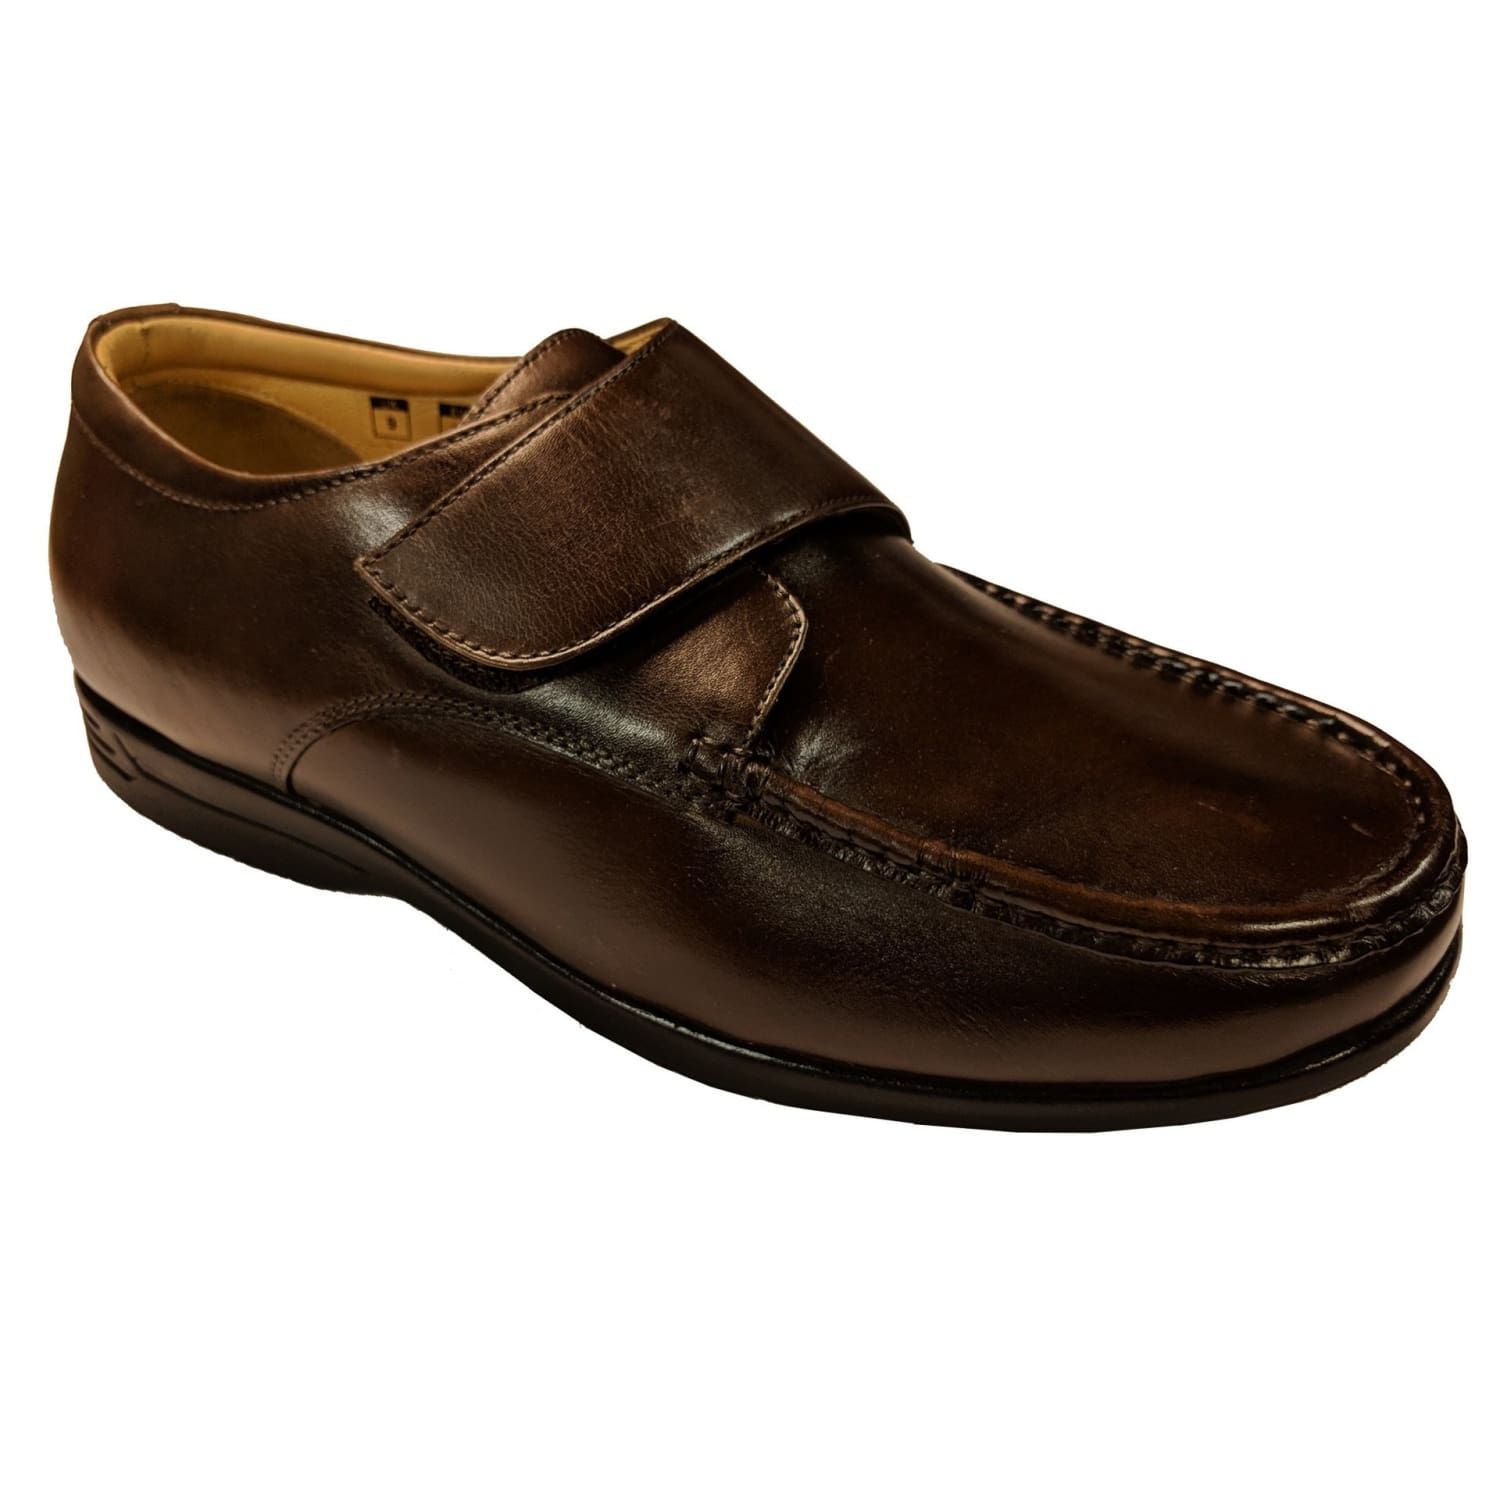 Fleet & Foster Shoes - Fred - Brown 1